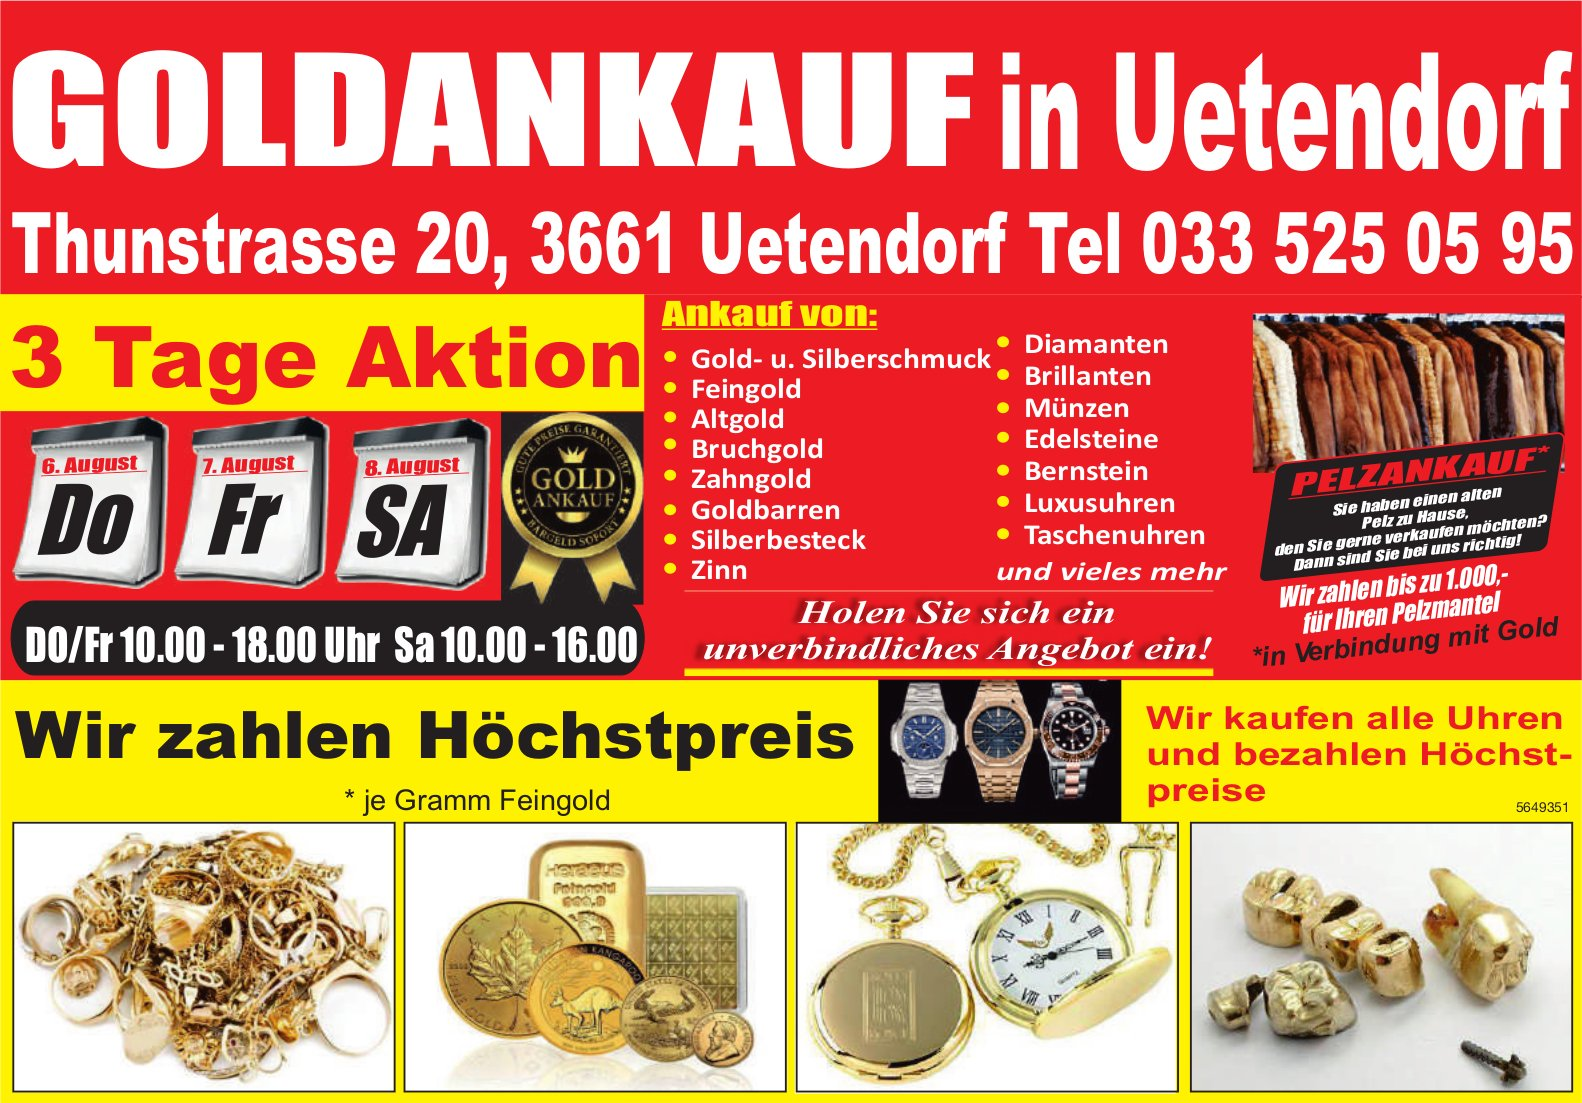 Goldankauf in Uetendorf,  6./7./8. August